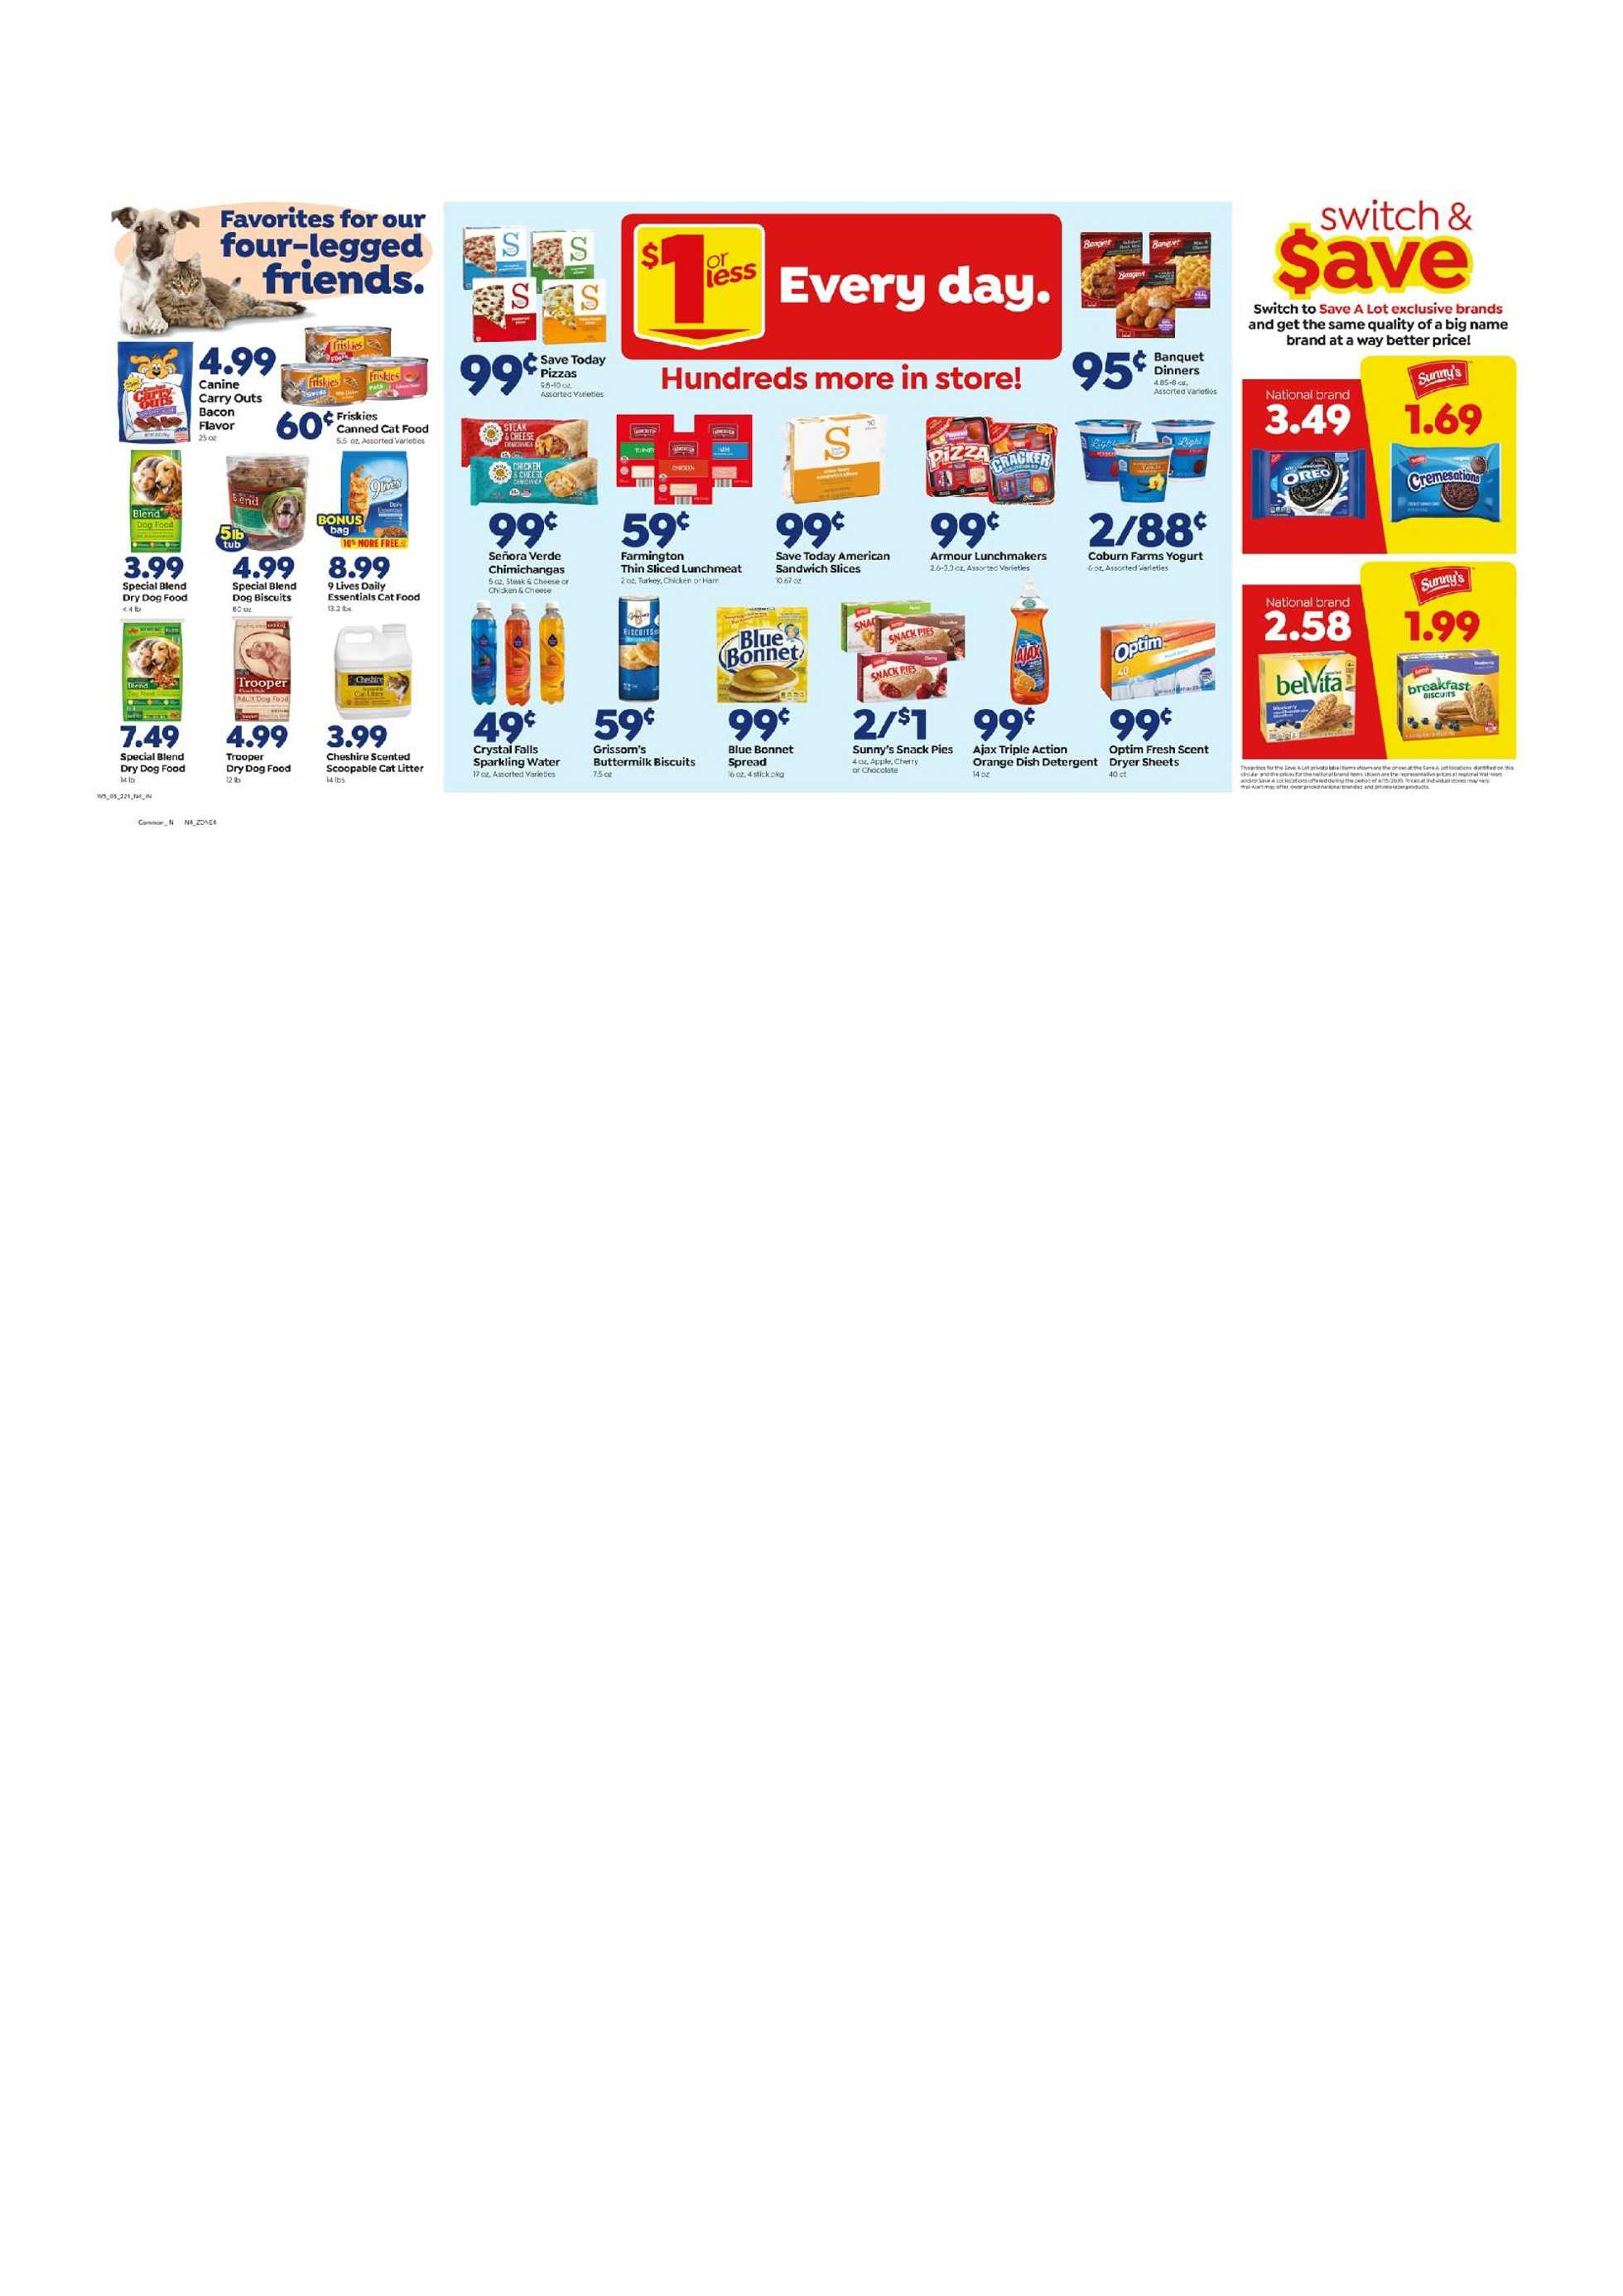 Save-A-Lot - deals are valid from 05/27/20 to 06/02/20 - page 2.